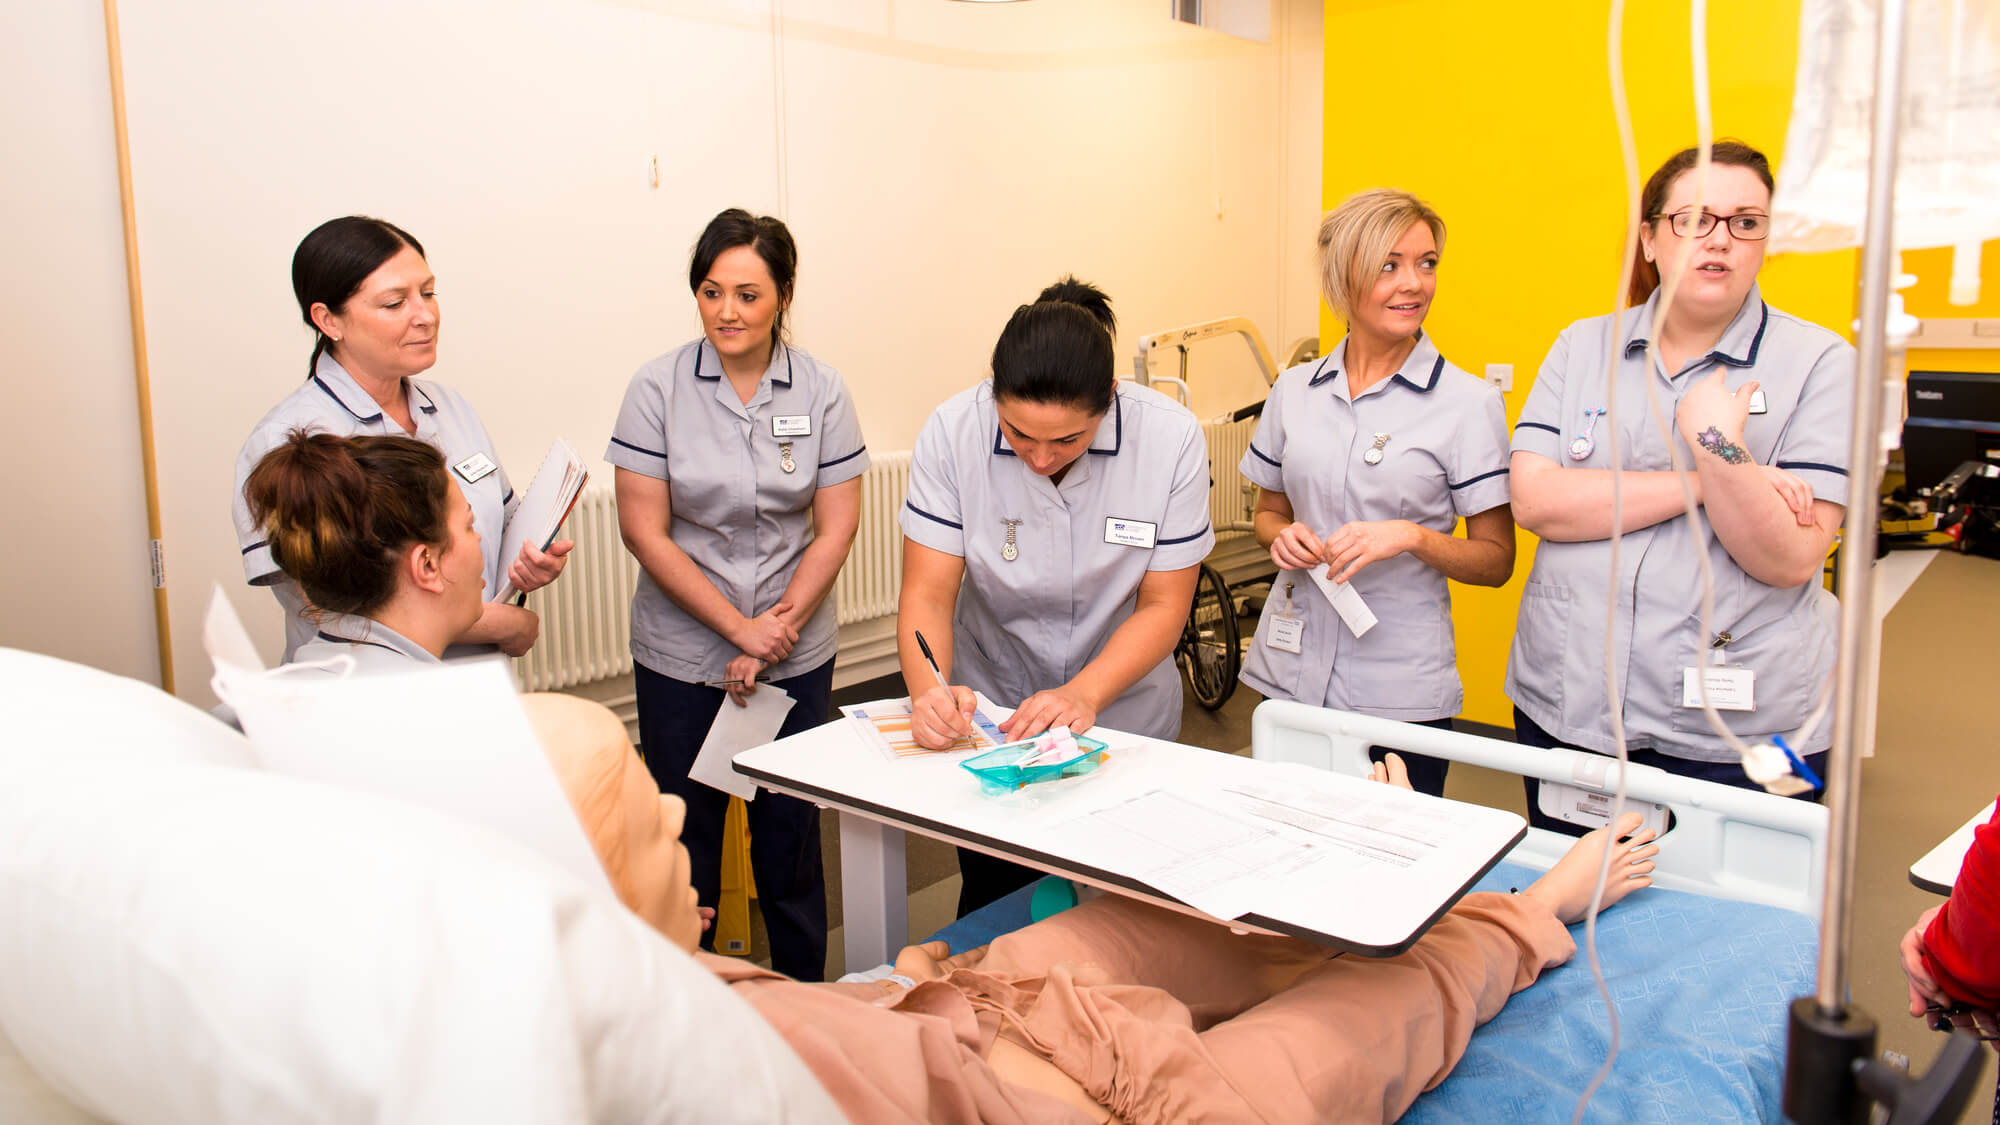 Student nurses study in ward facility